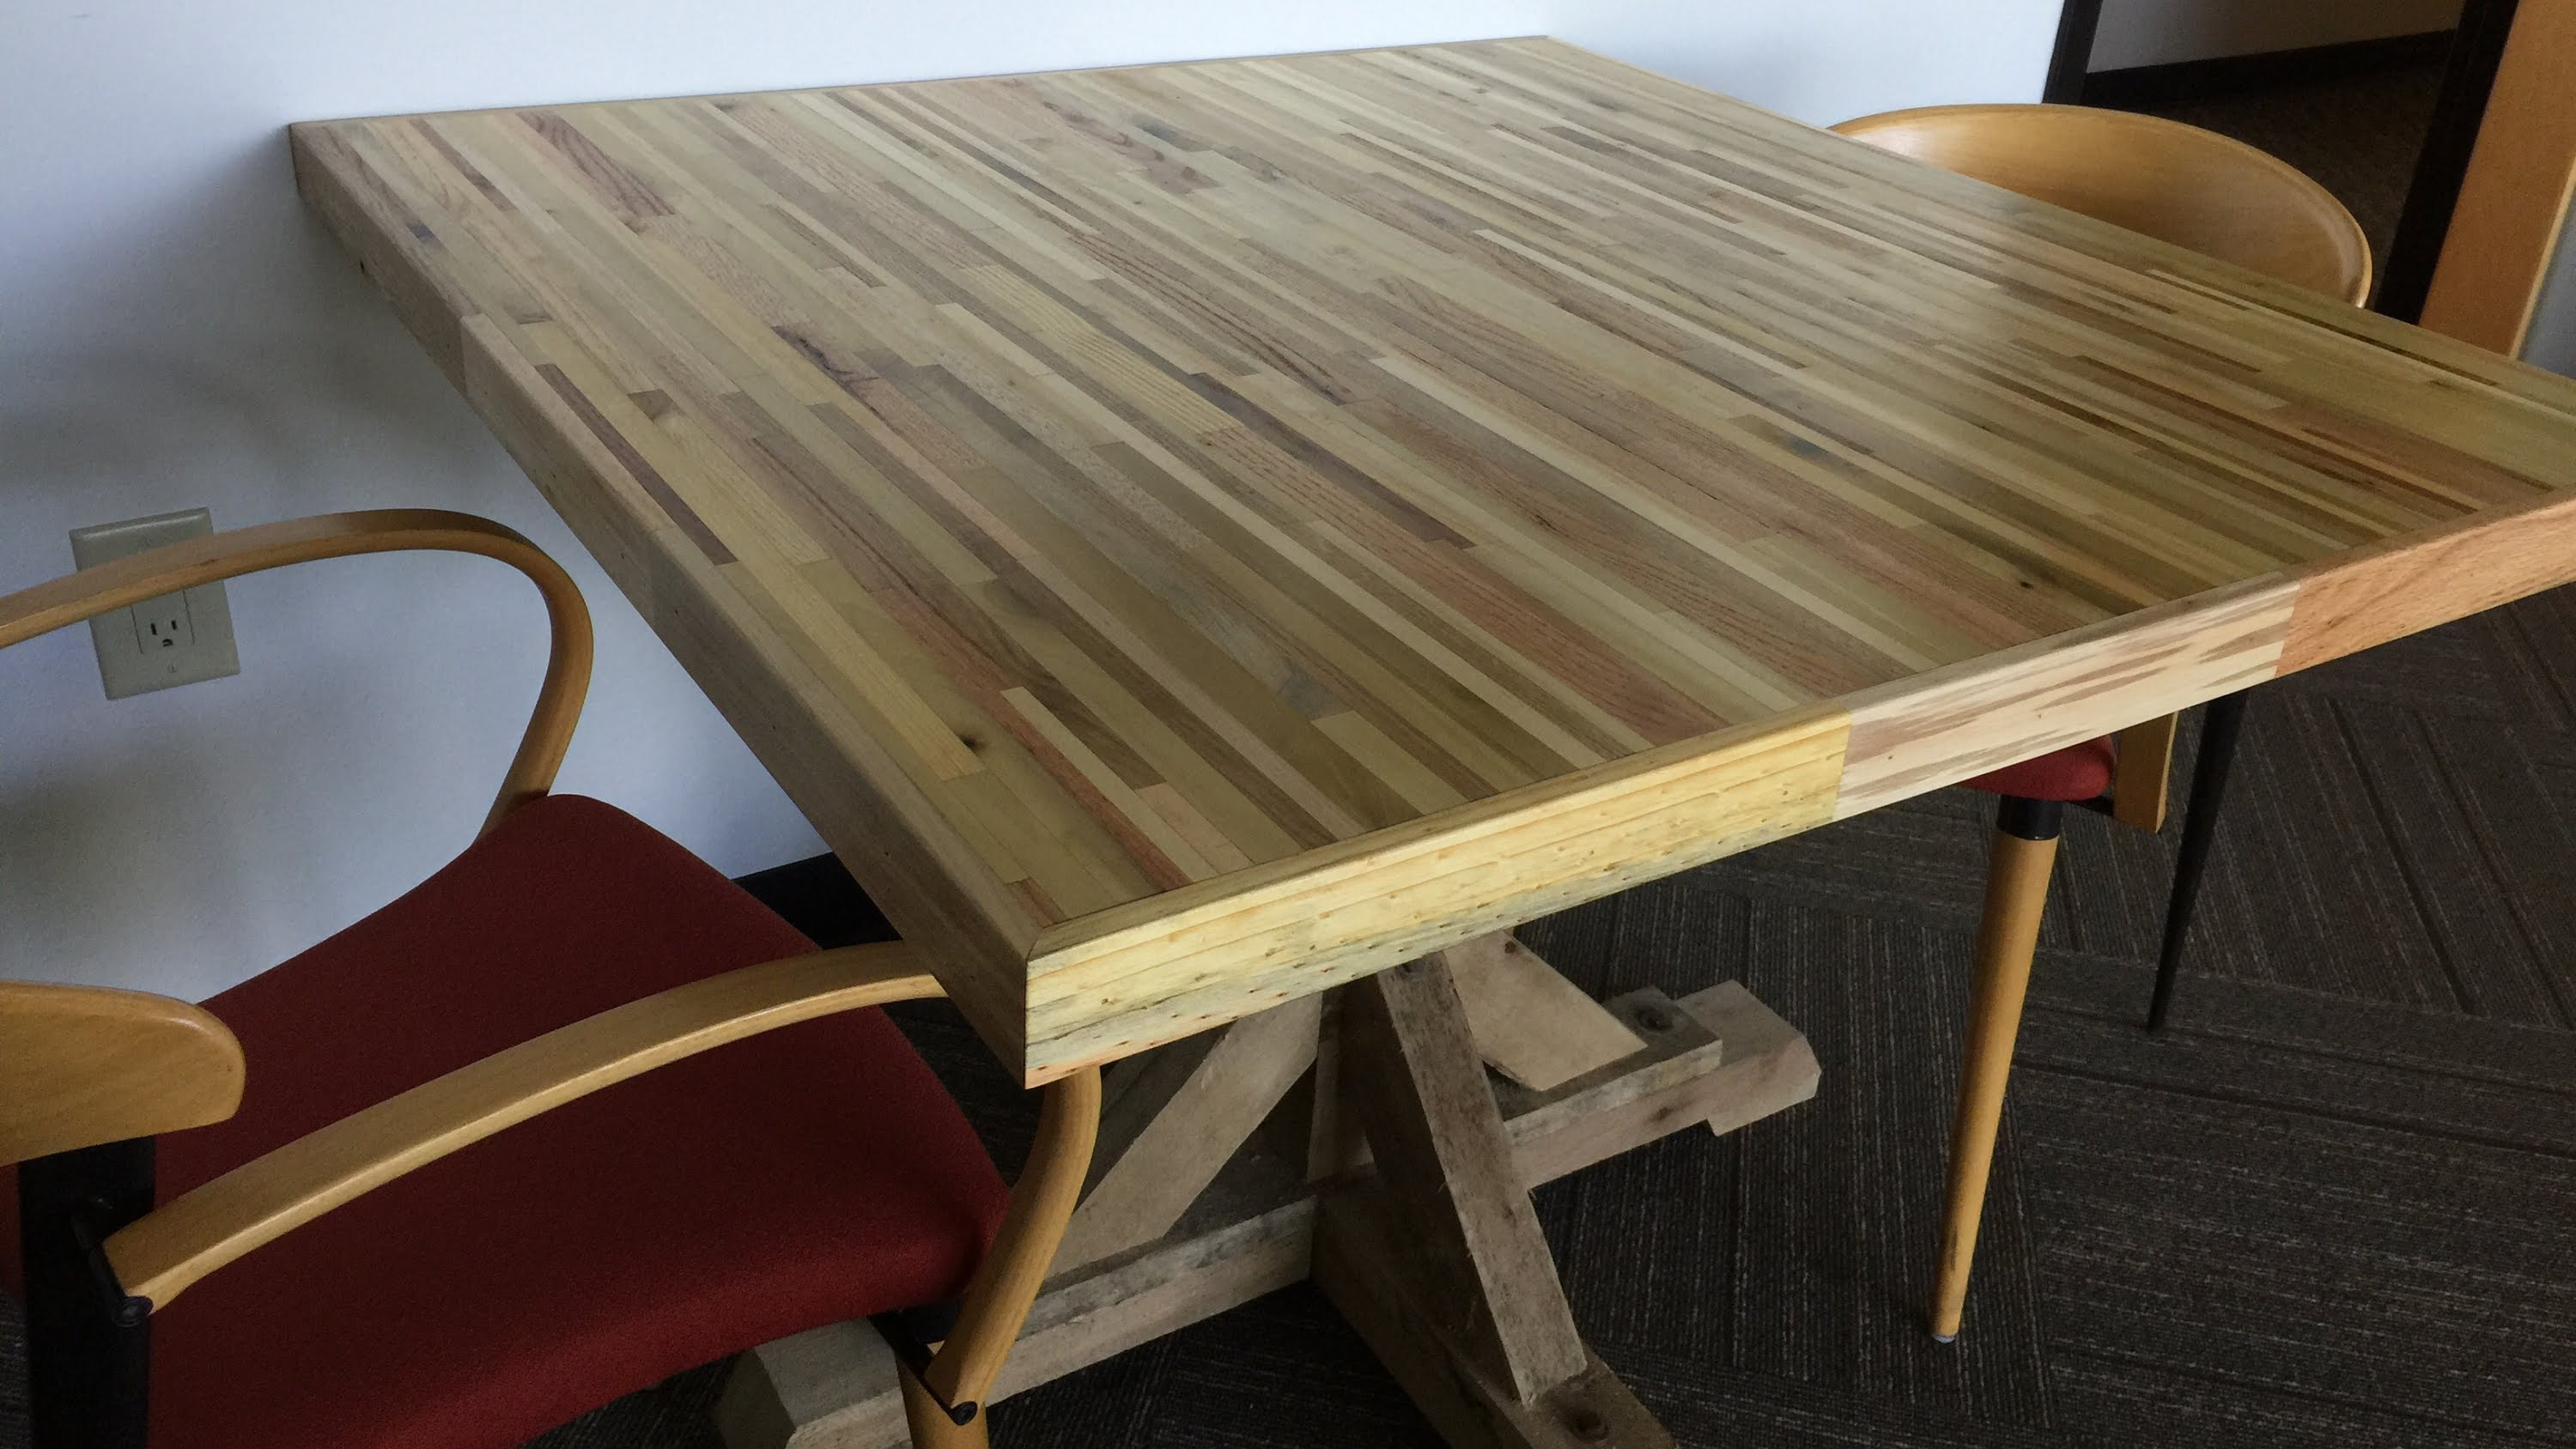 Diy Table With Pallets Office Meeting Table From Pallets Pallet Up Cycle Challenge 2015